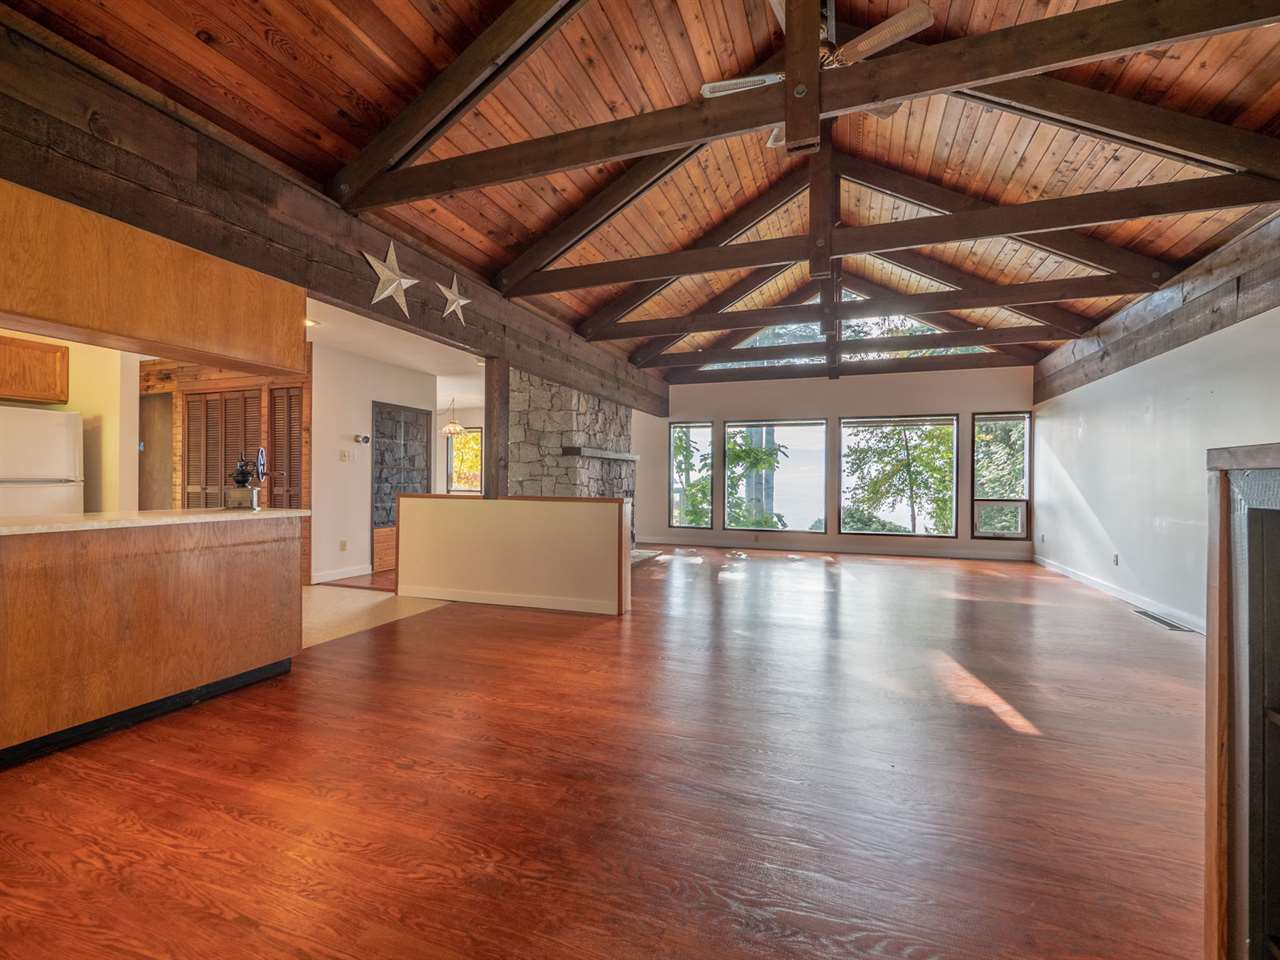 Photo 9: Photos: 877 GOWER POINT Road in Gibsons: Gibsons & Area House for sale (Sunshine Coast)  : MLS®# R2419918